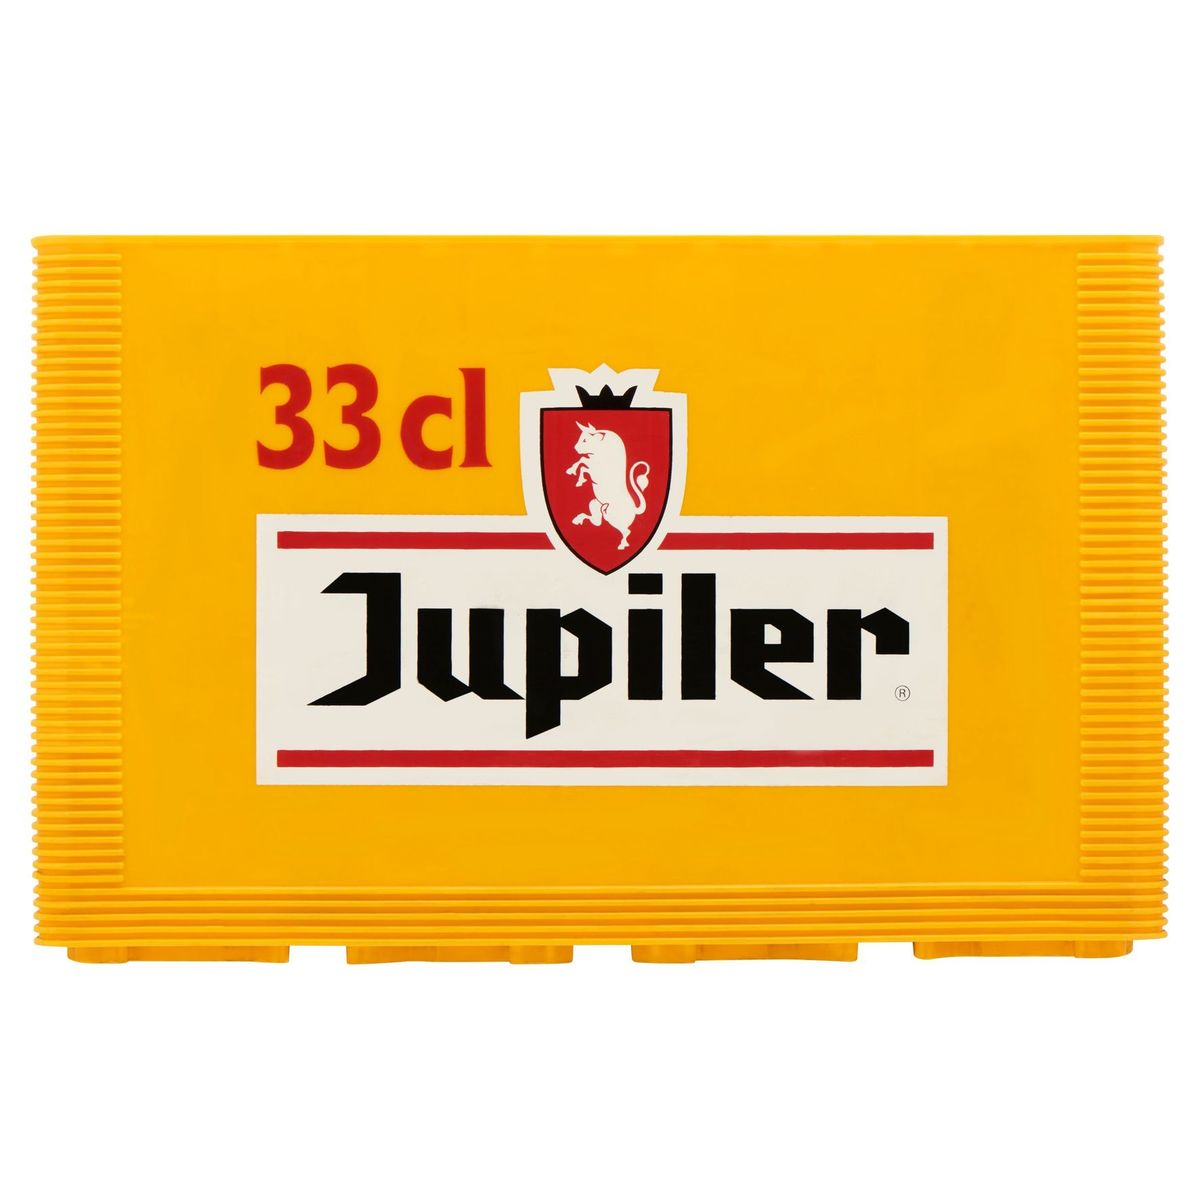 Jupiler Blond Bier Krat 24 x 33 cl